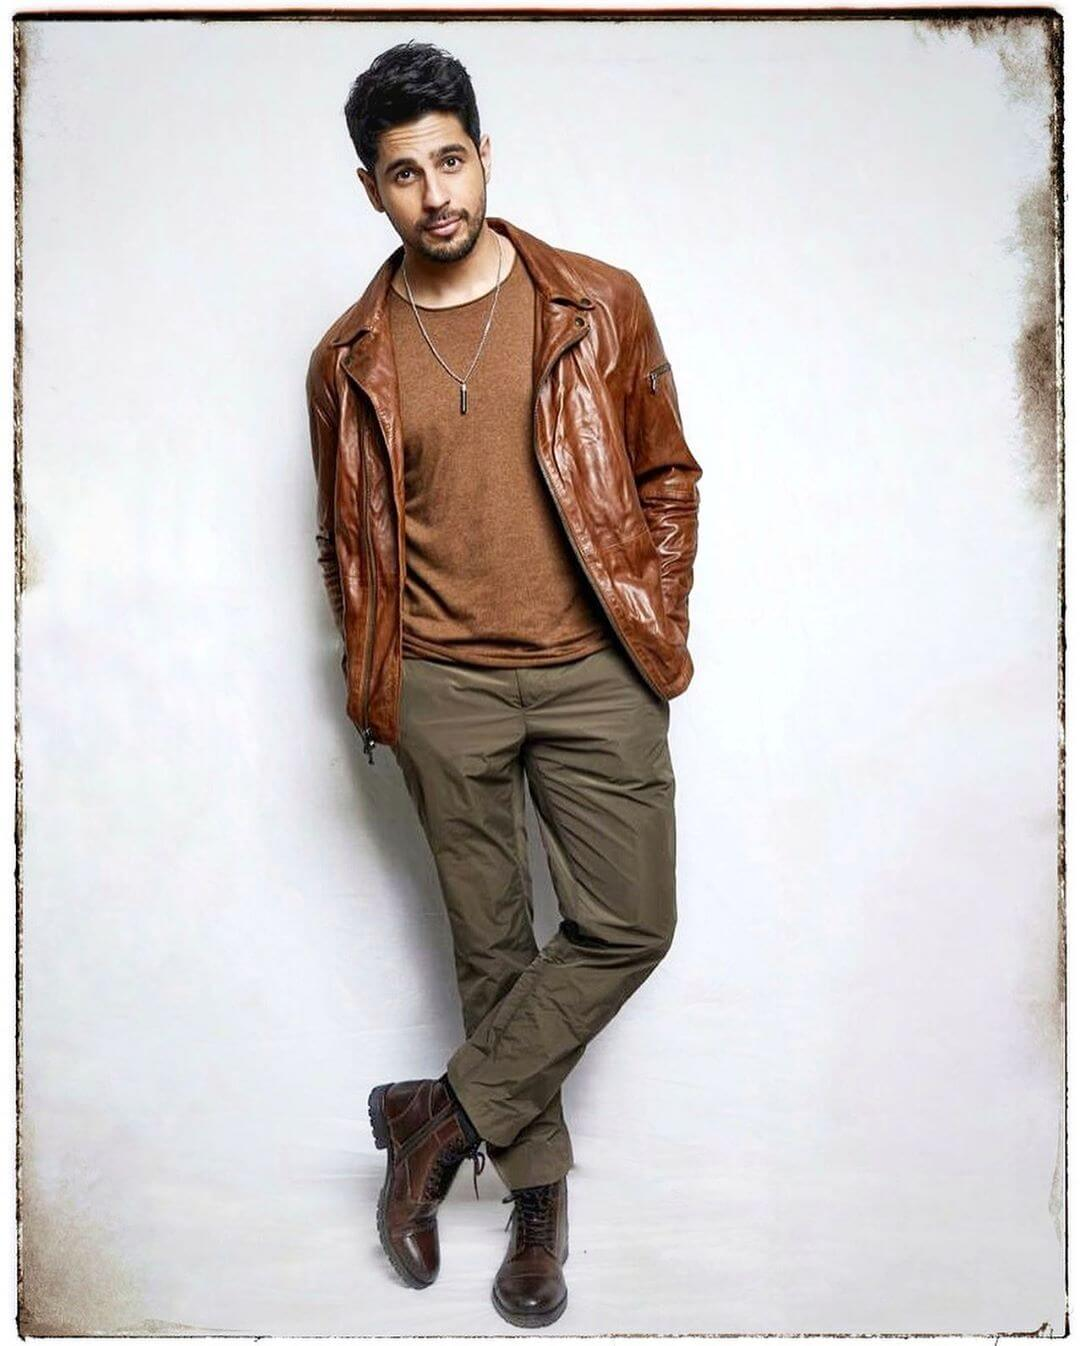 Sidharth Malhotra Movies, Height, Age, Photos, Birth Date, Biography, Girlfriend, Family, Hairstyle, Education, Details, Net Worth, Awards, Wiki, Instagram, Facebook, Imdb, Twitter (34)